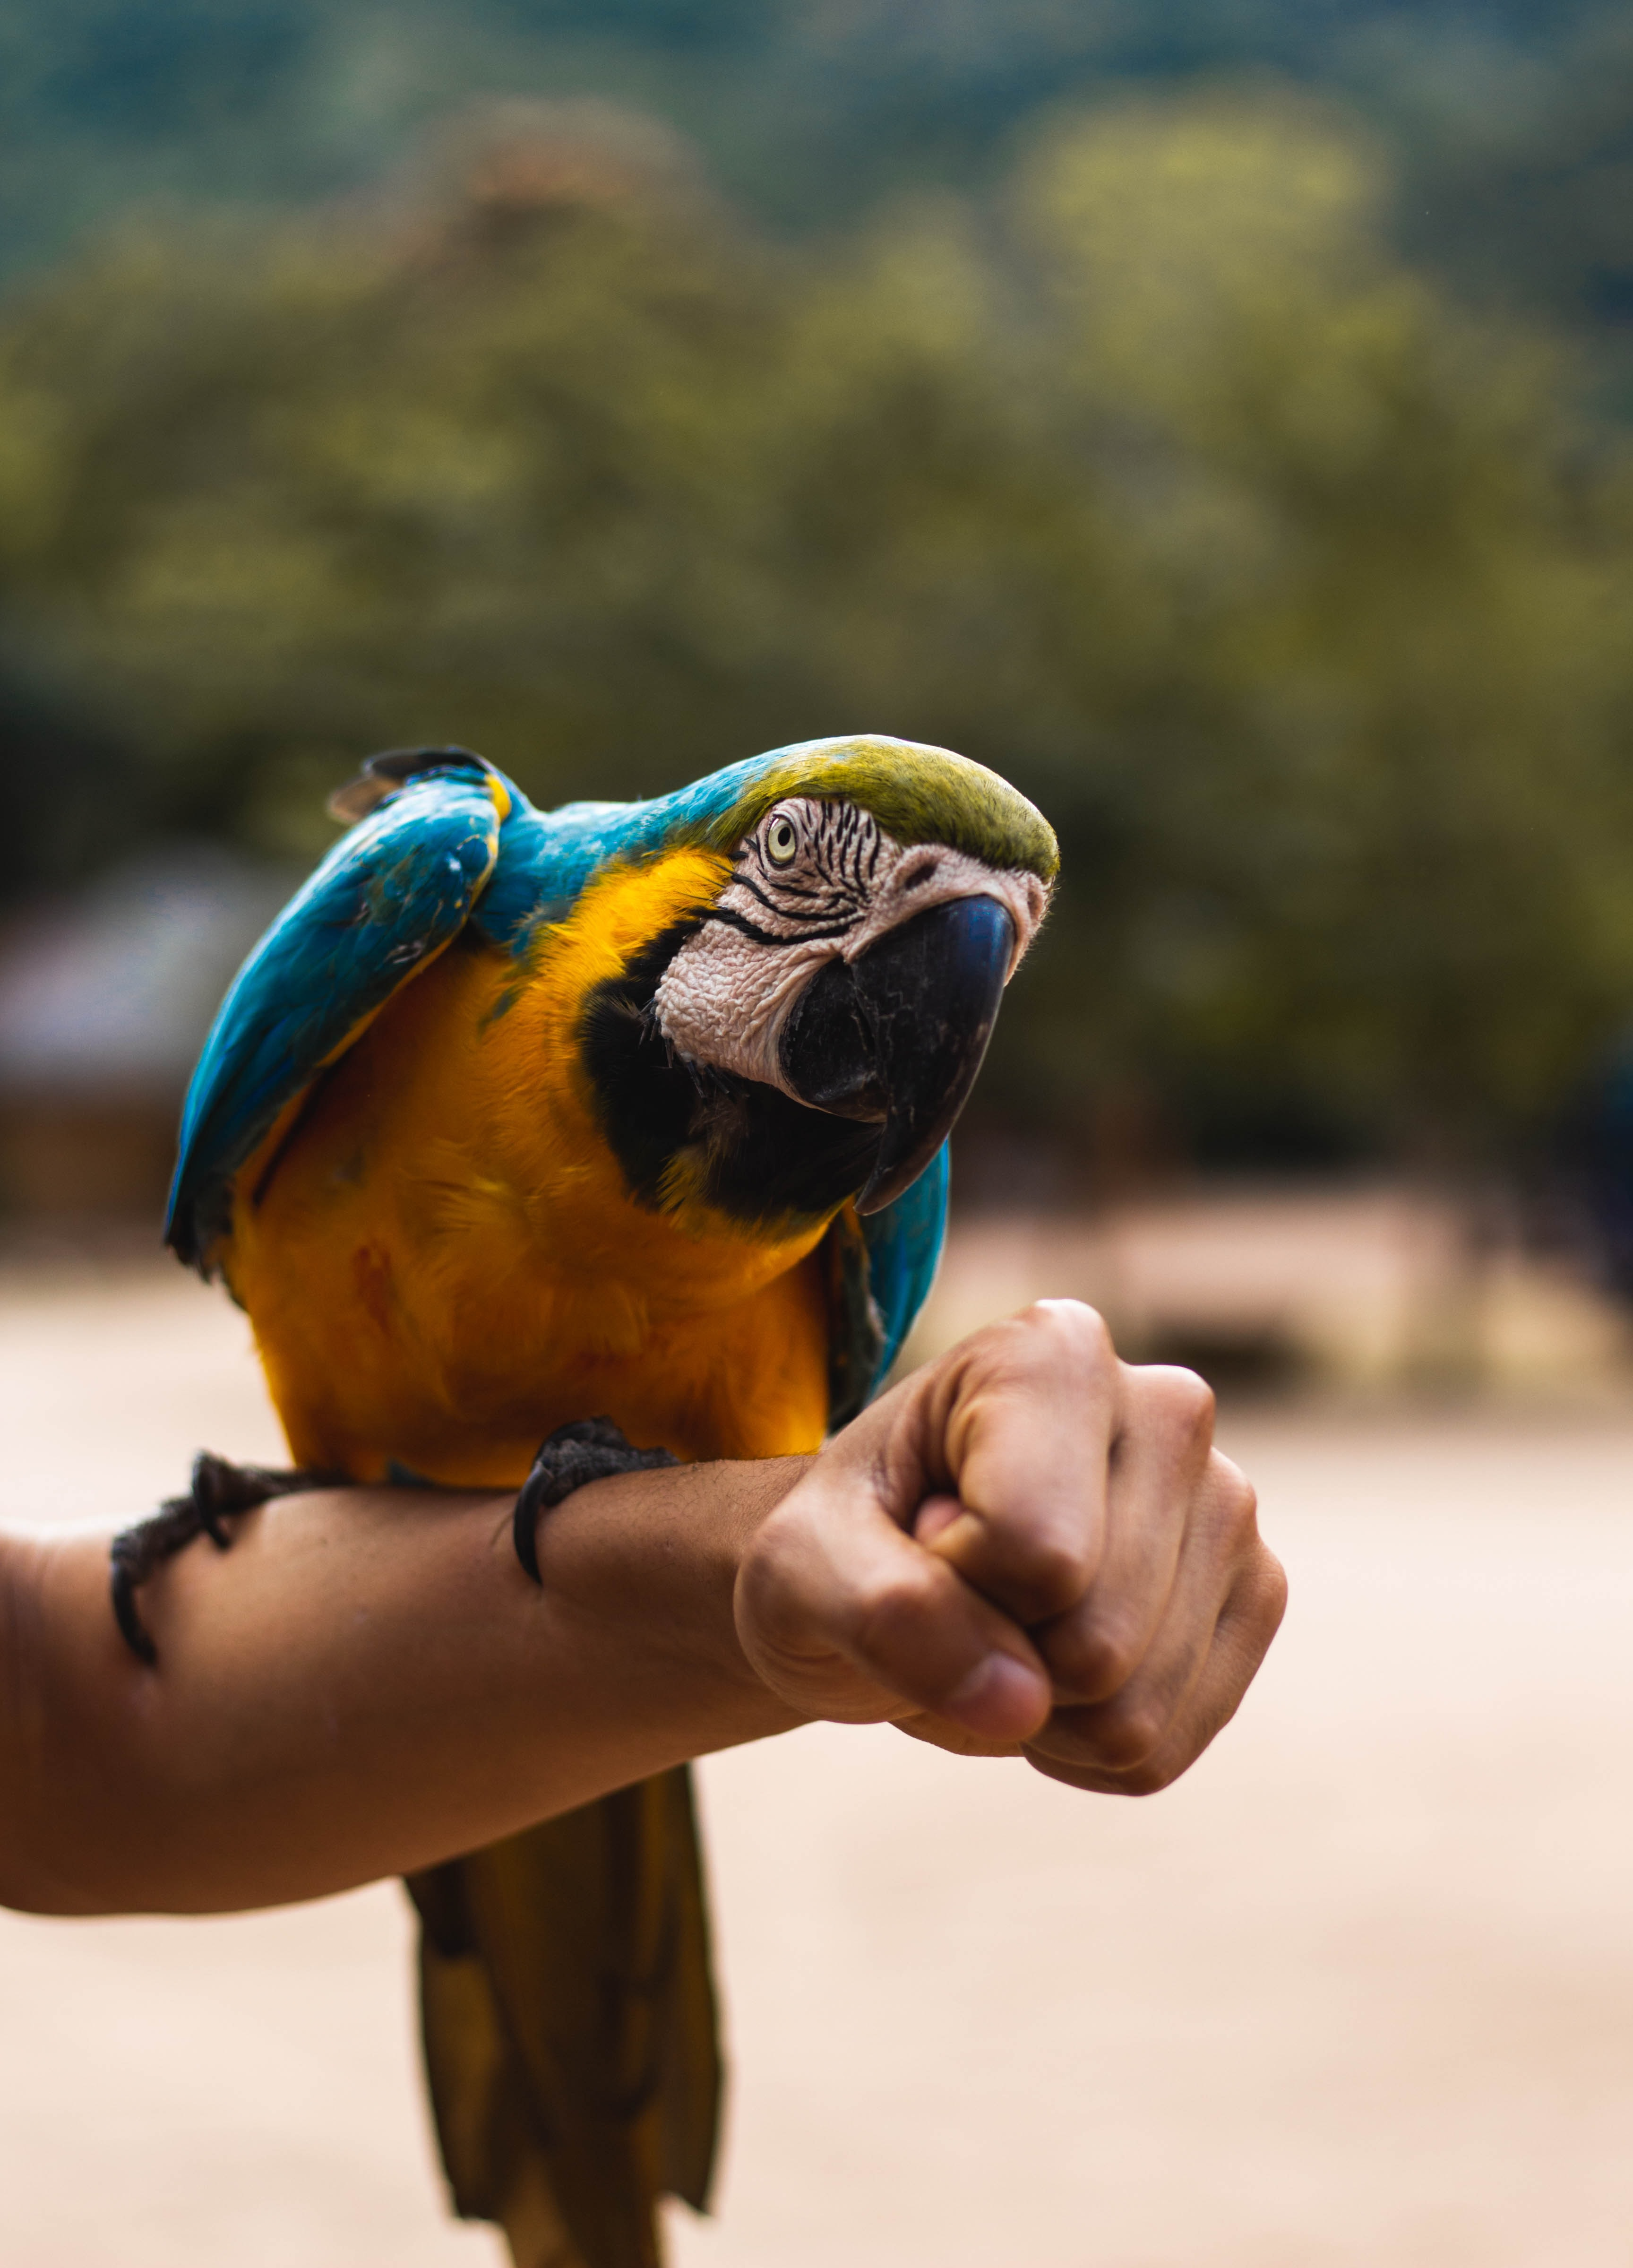 orange, blue, and green macaw bird perched on person's hand